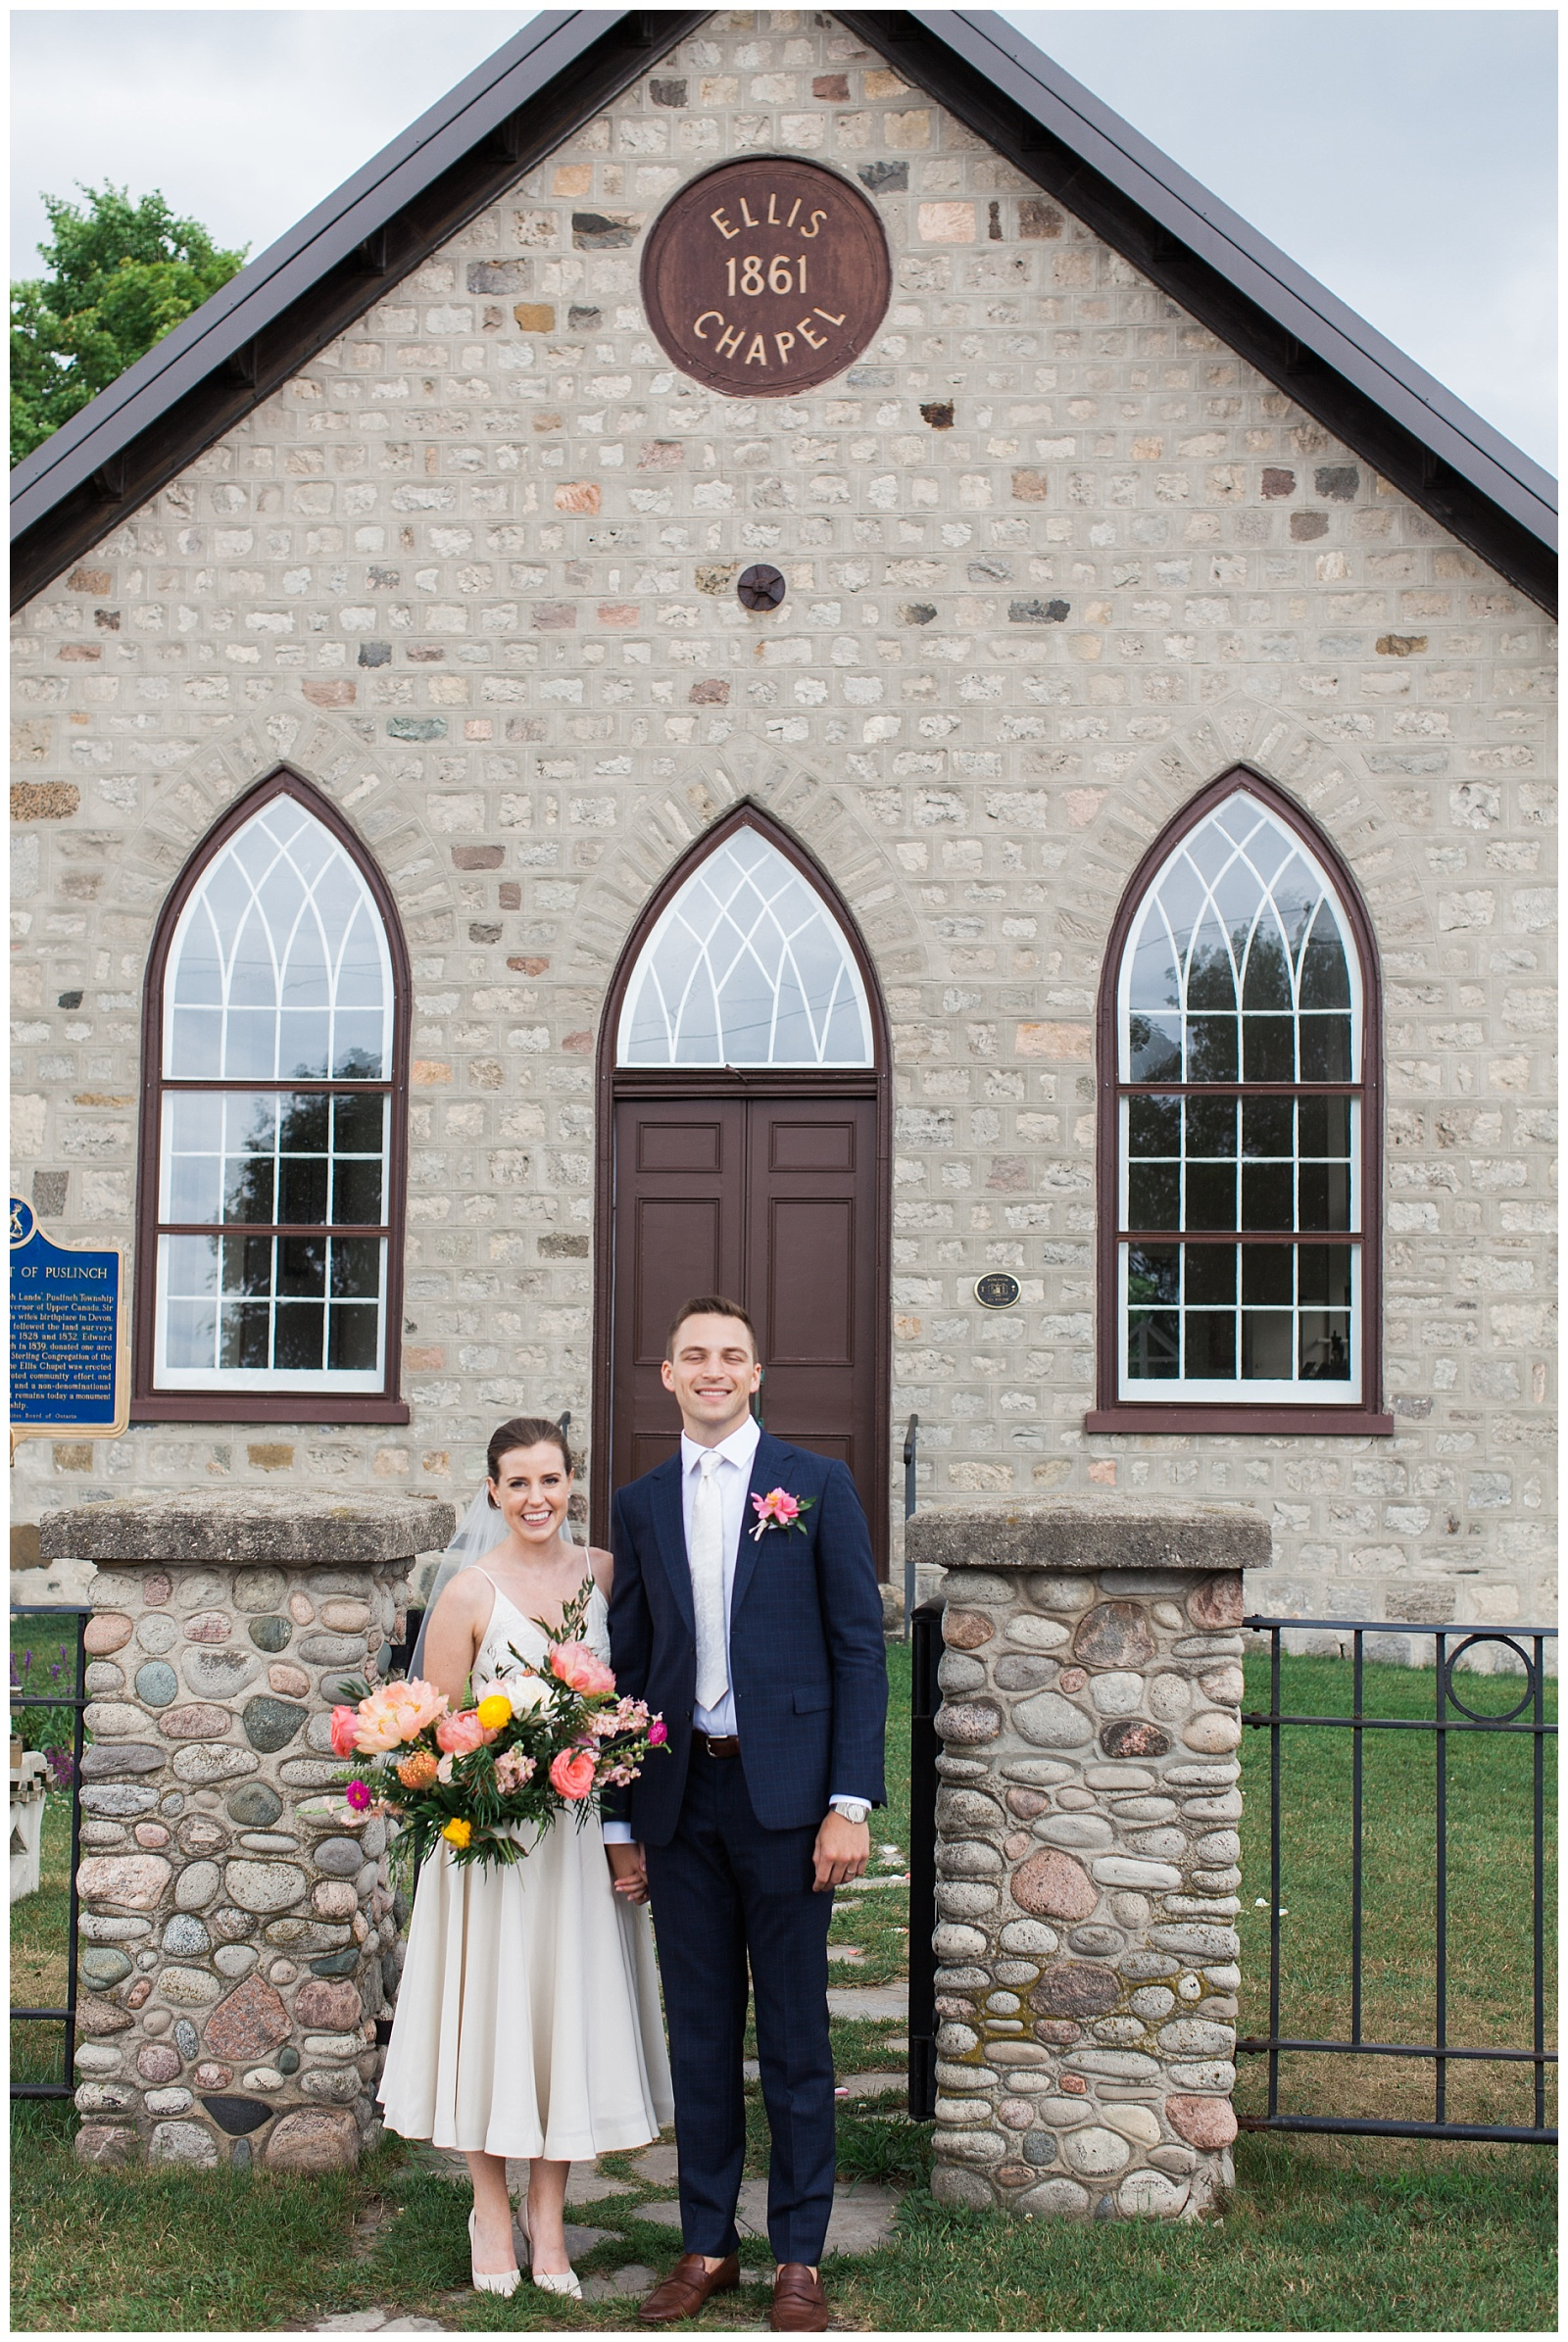 Bride and groom smiling in front of chapel at Guelph Ontario Wedding | Ontario Wedding Photographer | Toronto Wedding Photographer | 3photography